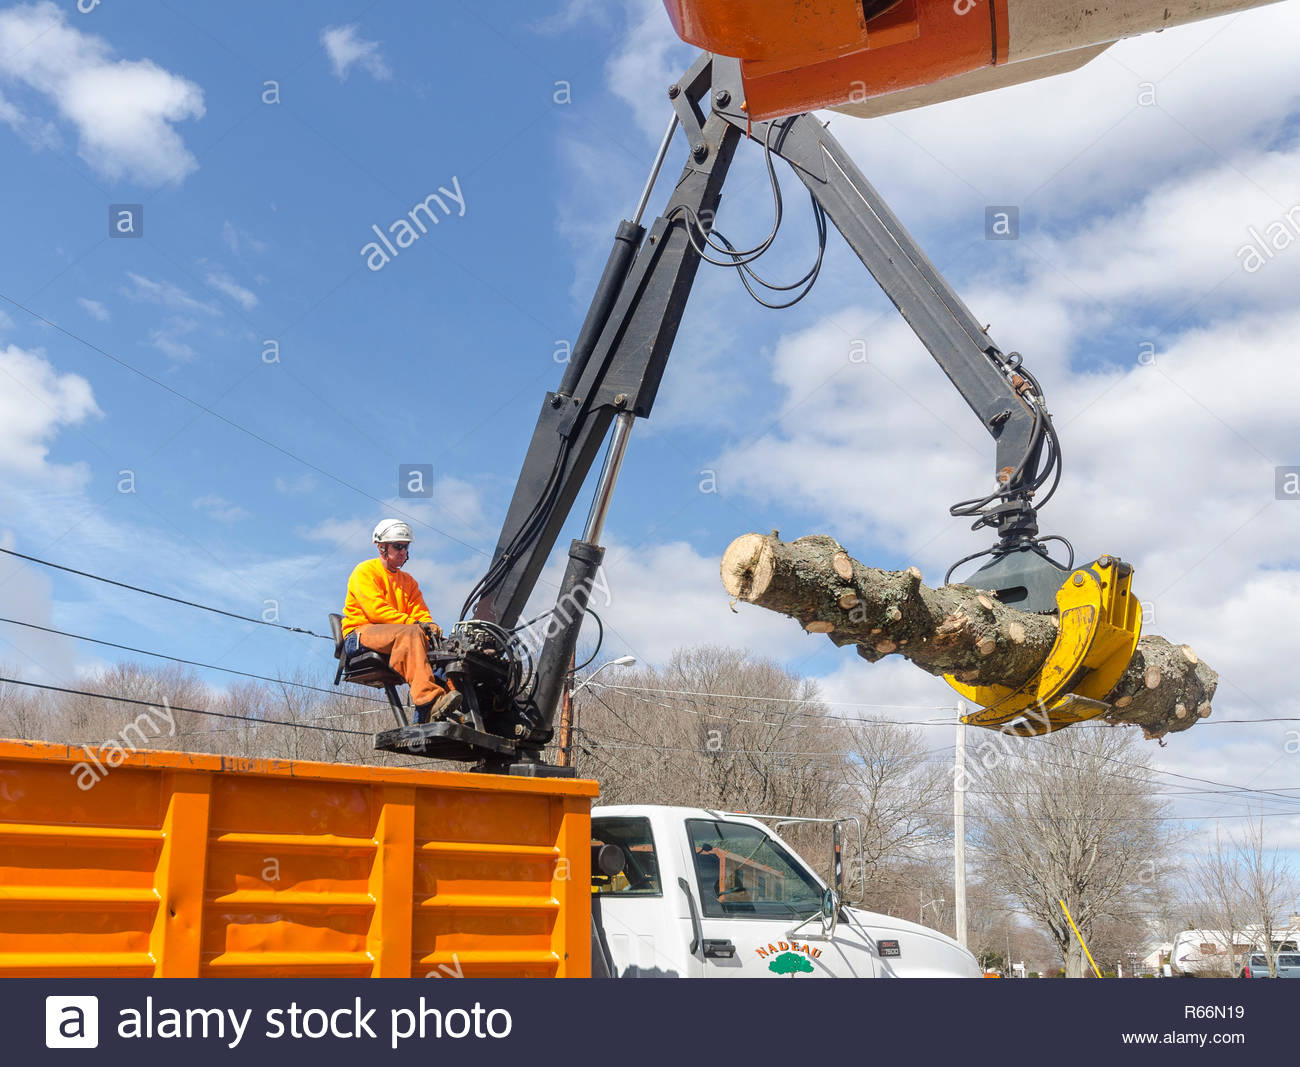 Somerset, Massachusetts, USA - March 31, 2015: Boom operator moving section of trunk of downed Norway Spruce tree to truck for removal - Stock Image